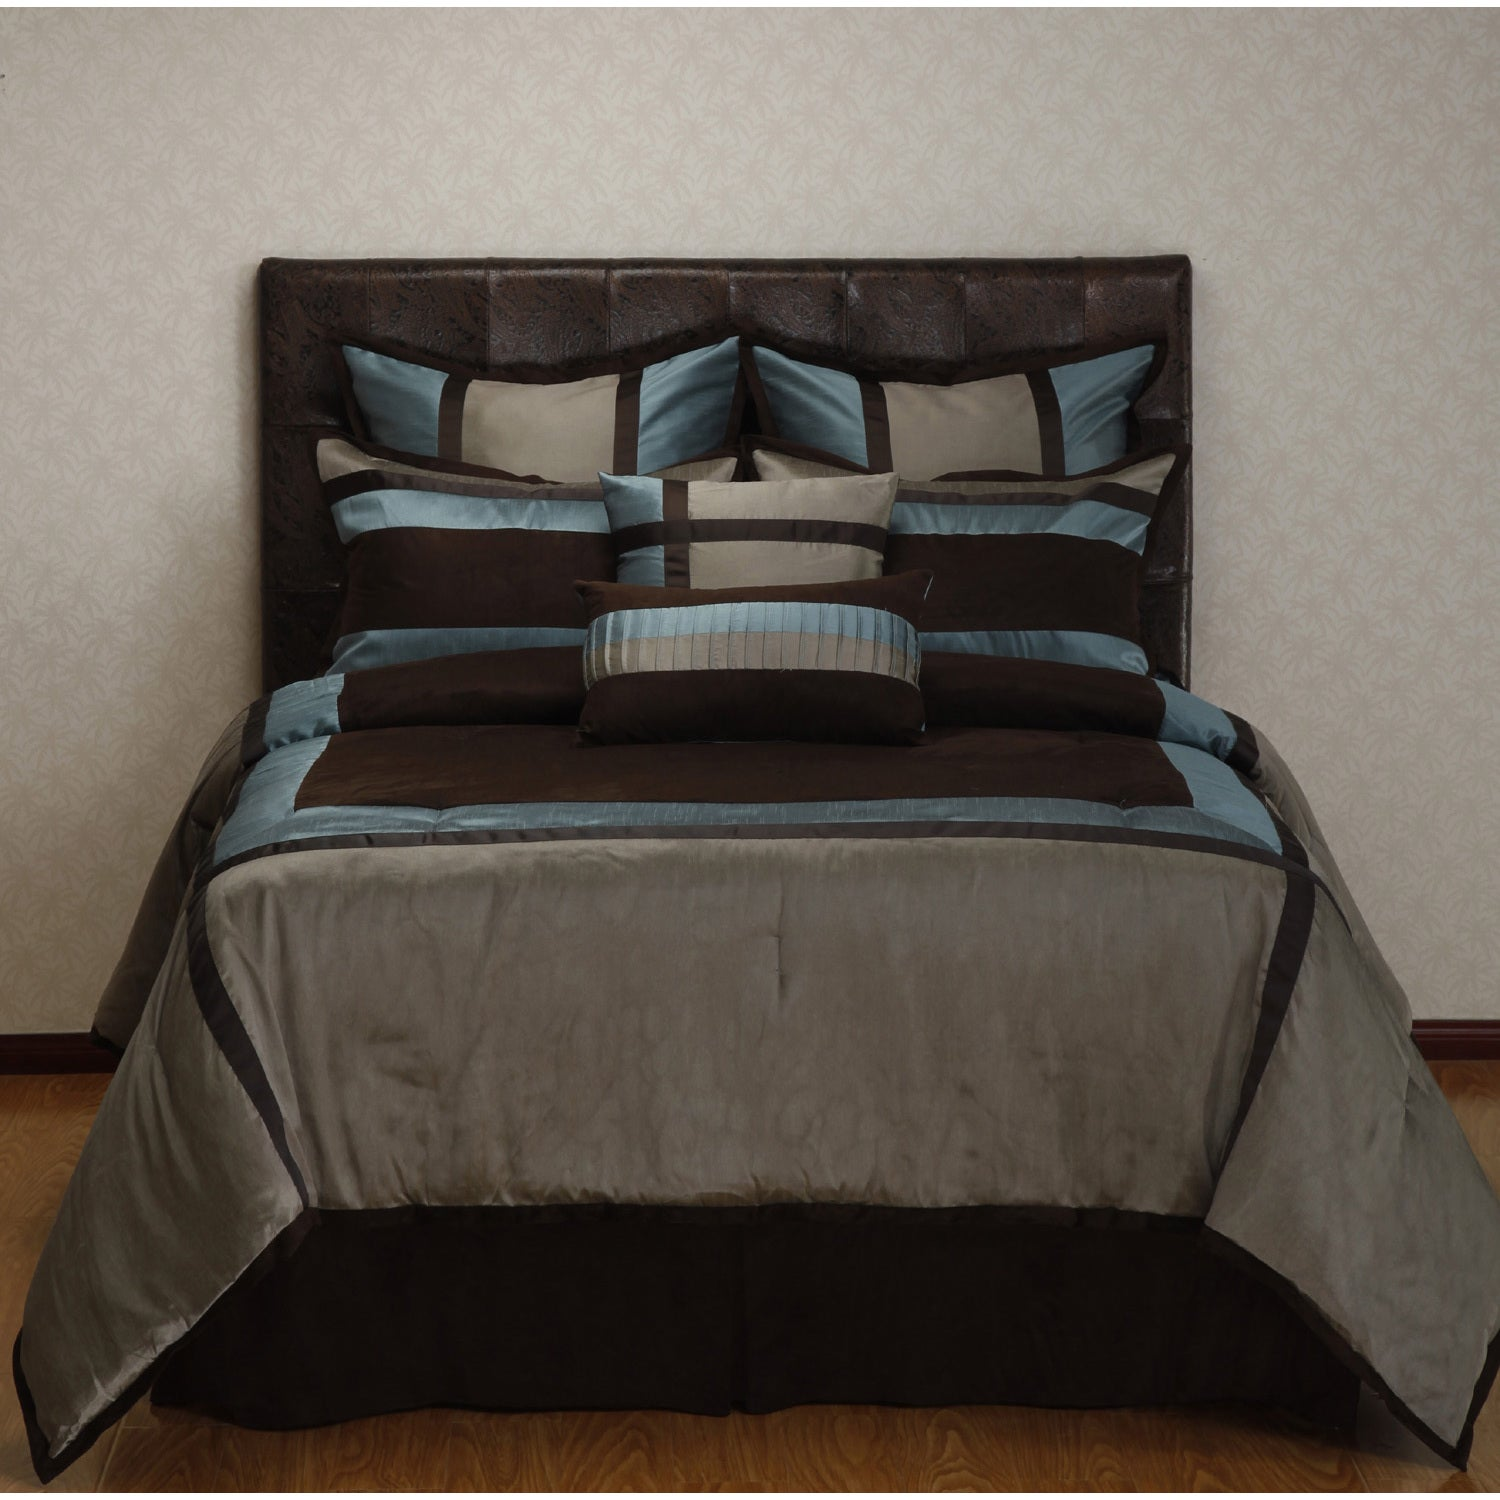 twill nautica seaward product shipping bath flannel free overstock set bedding today reversible comforter